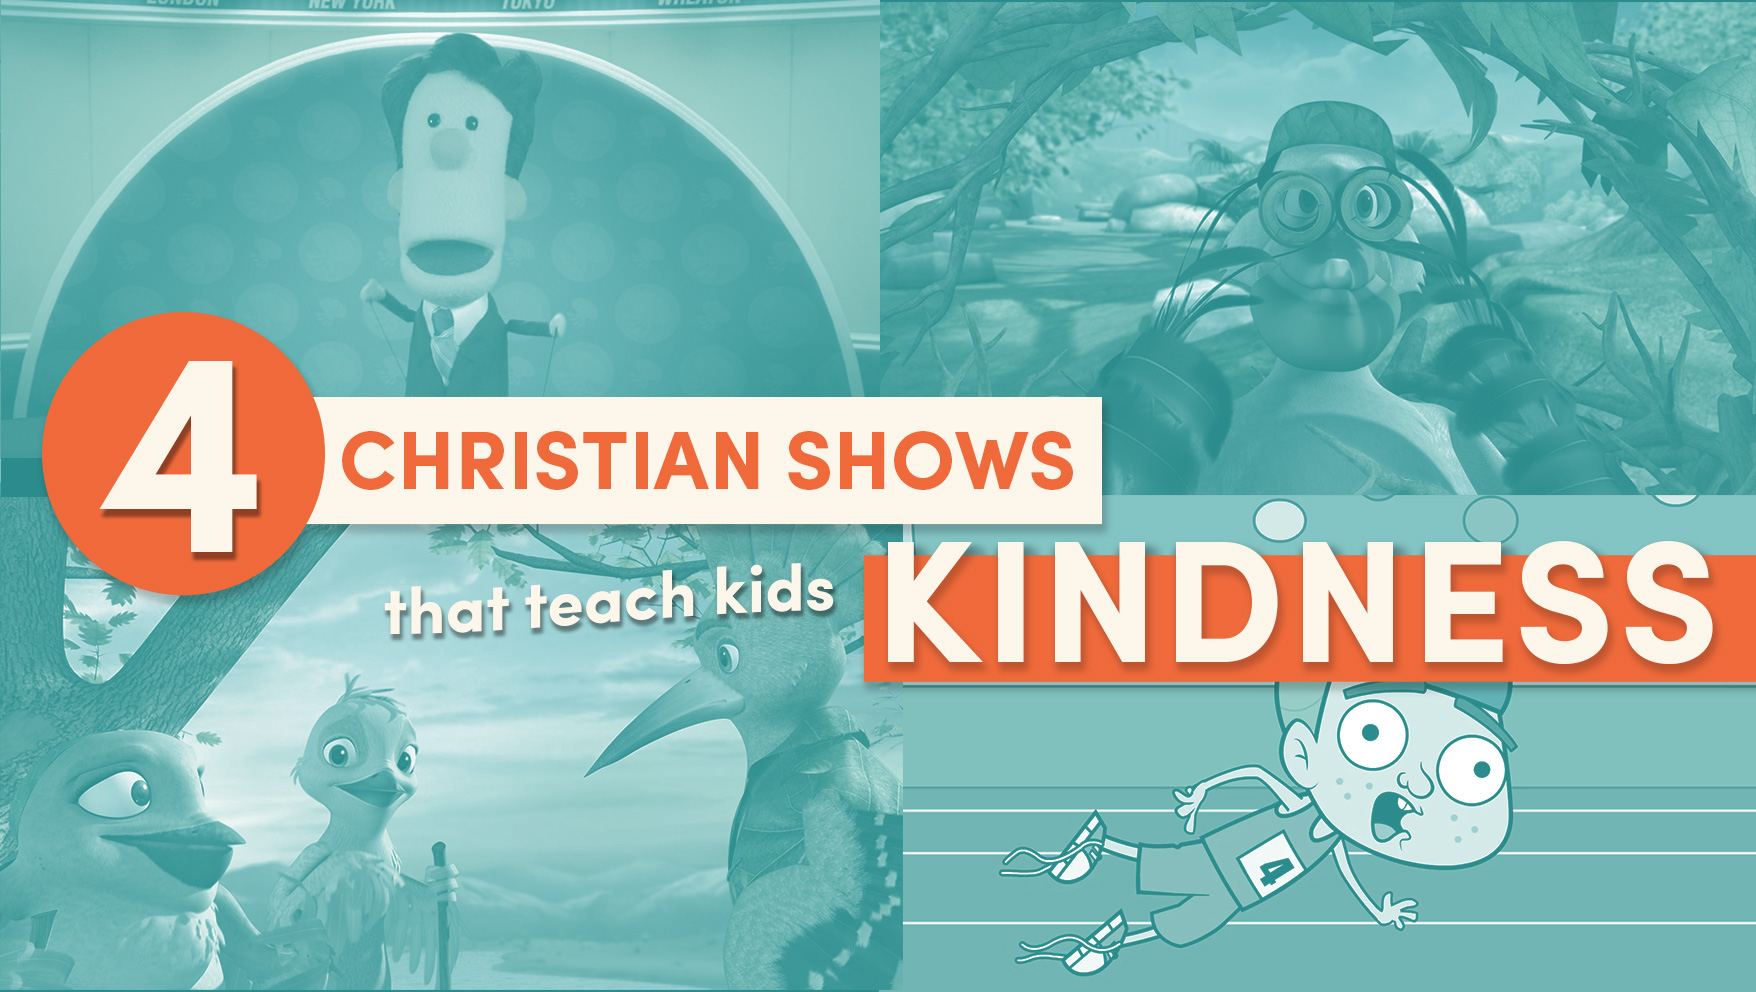 4 Christian Shows that Teach Kids Kindness